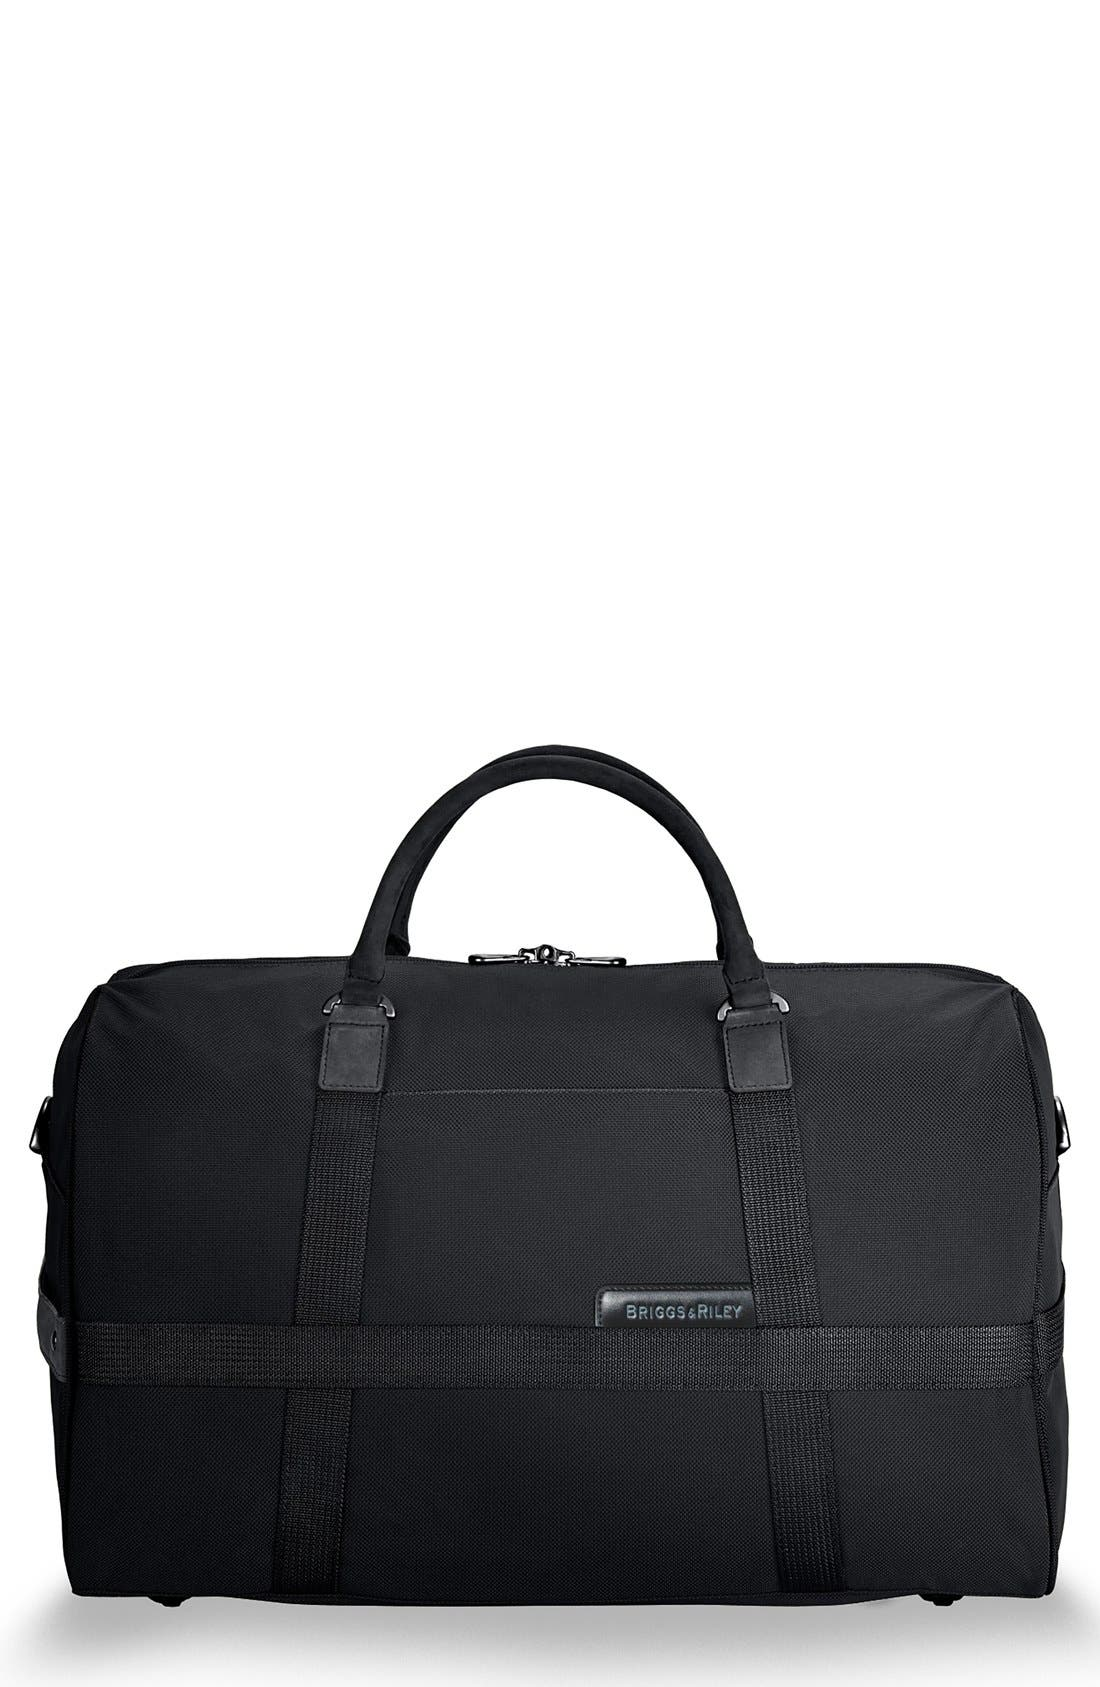 BRIGGS & RILEY 'Baseline - Medium' Duffel Bag